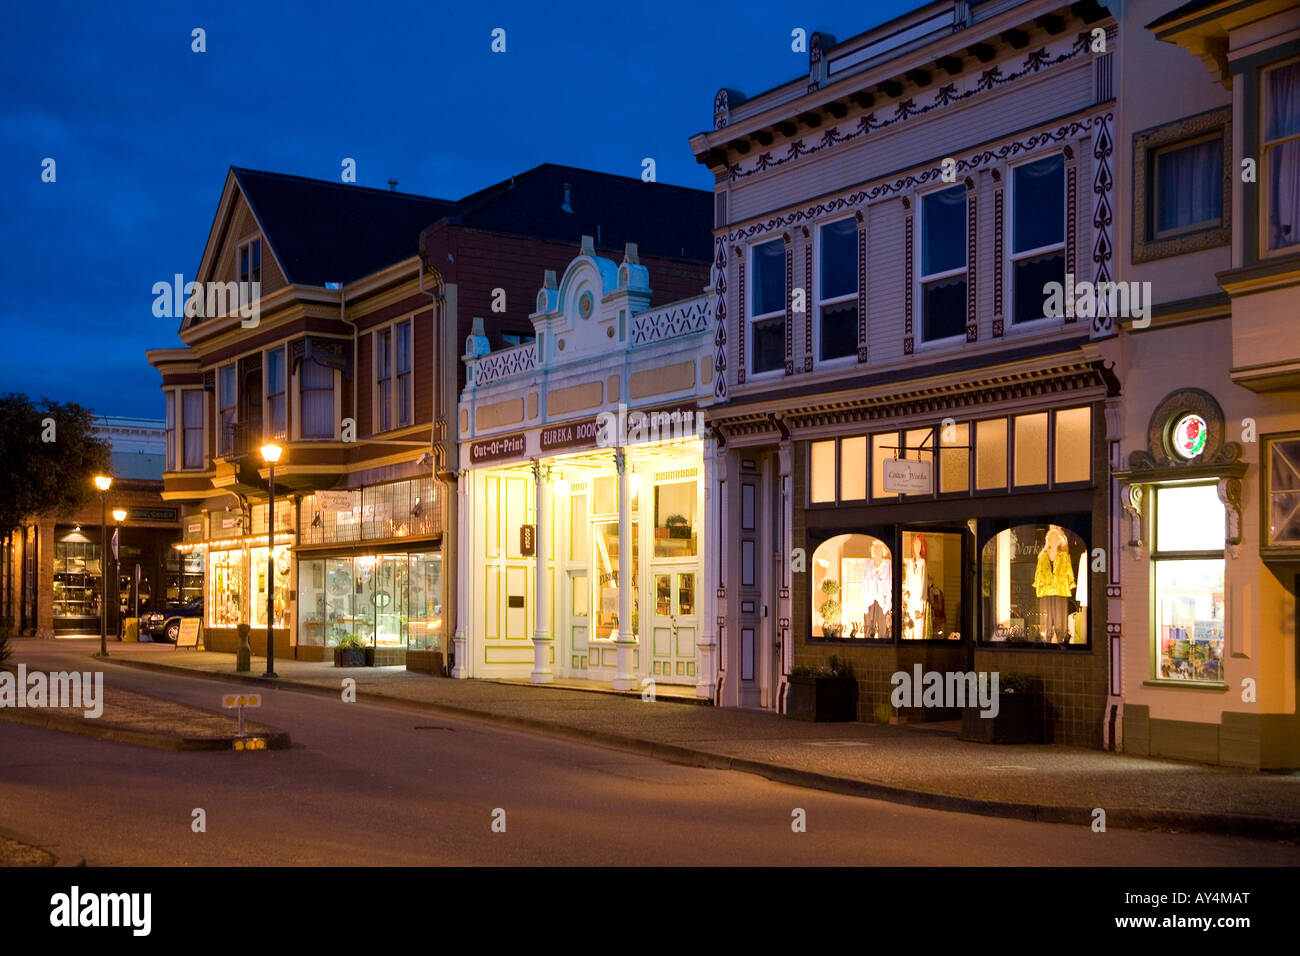 Row of shops in historic downtown Eureka - Stock Image